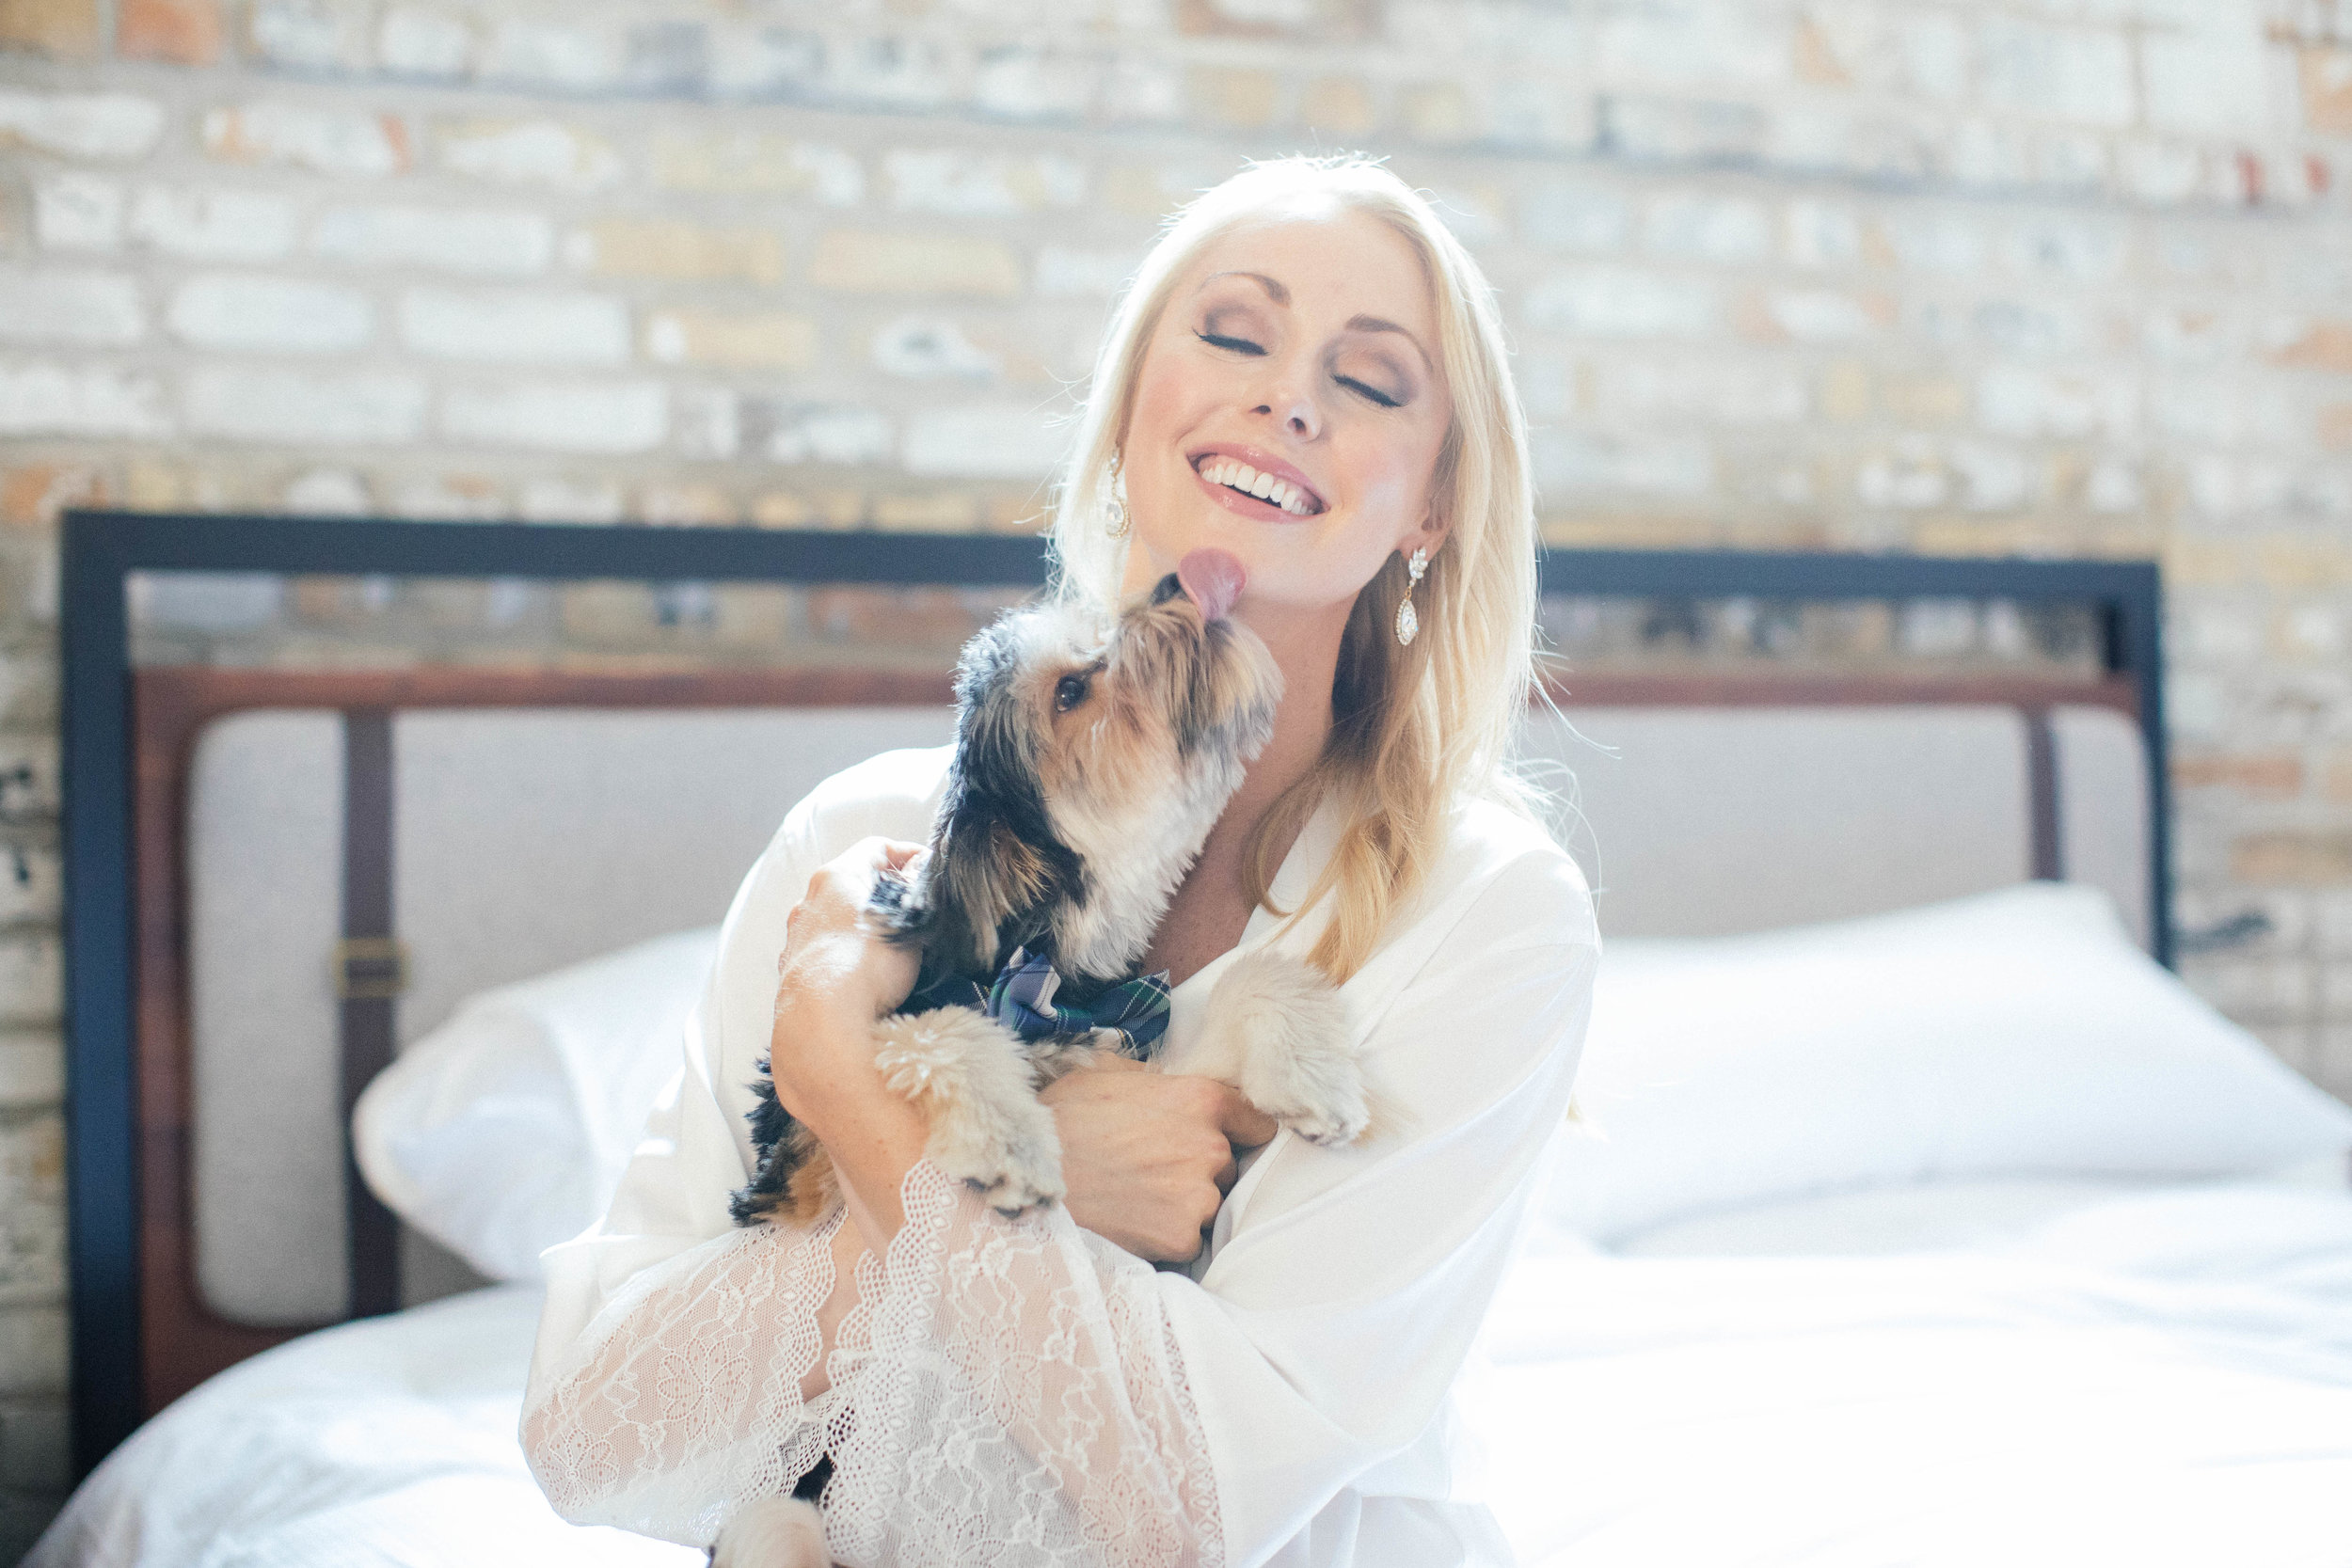 Hewing Hotel Wedding Photography Bride with puppy Getting Ready